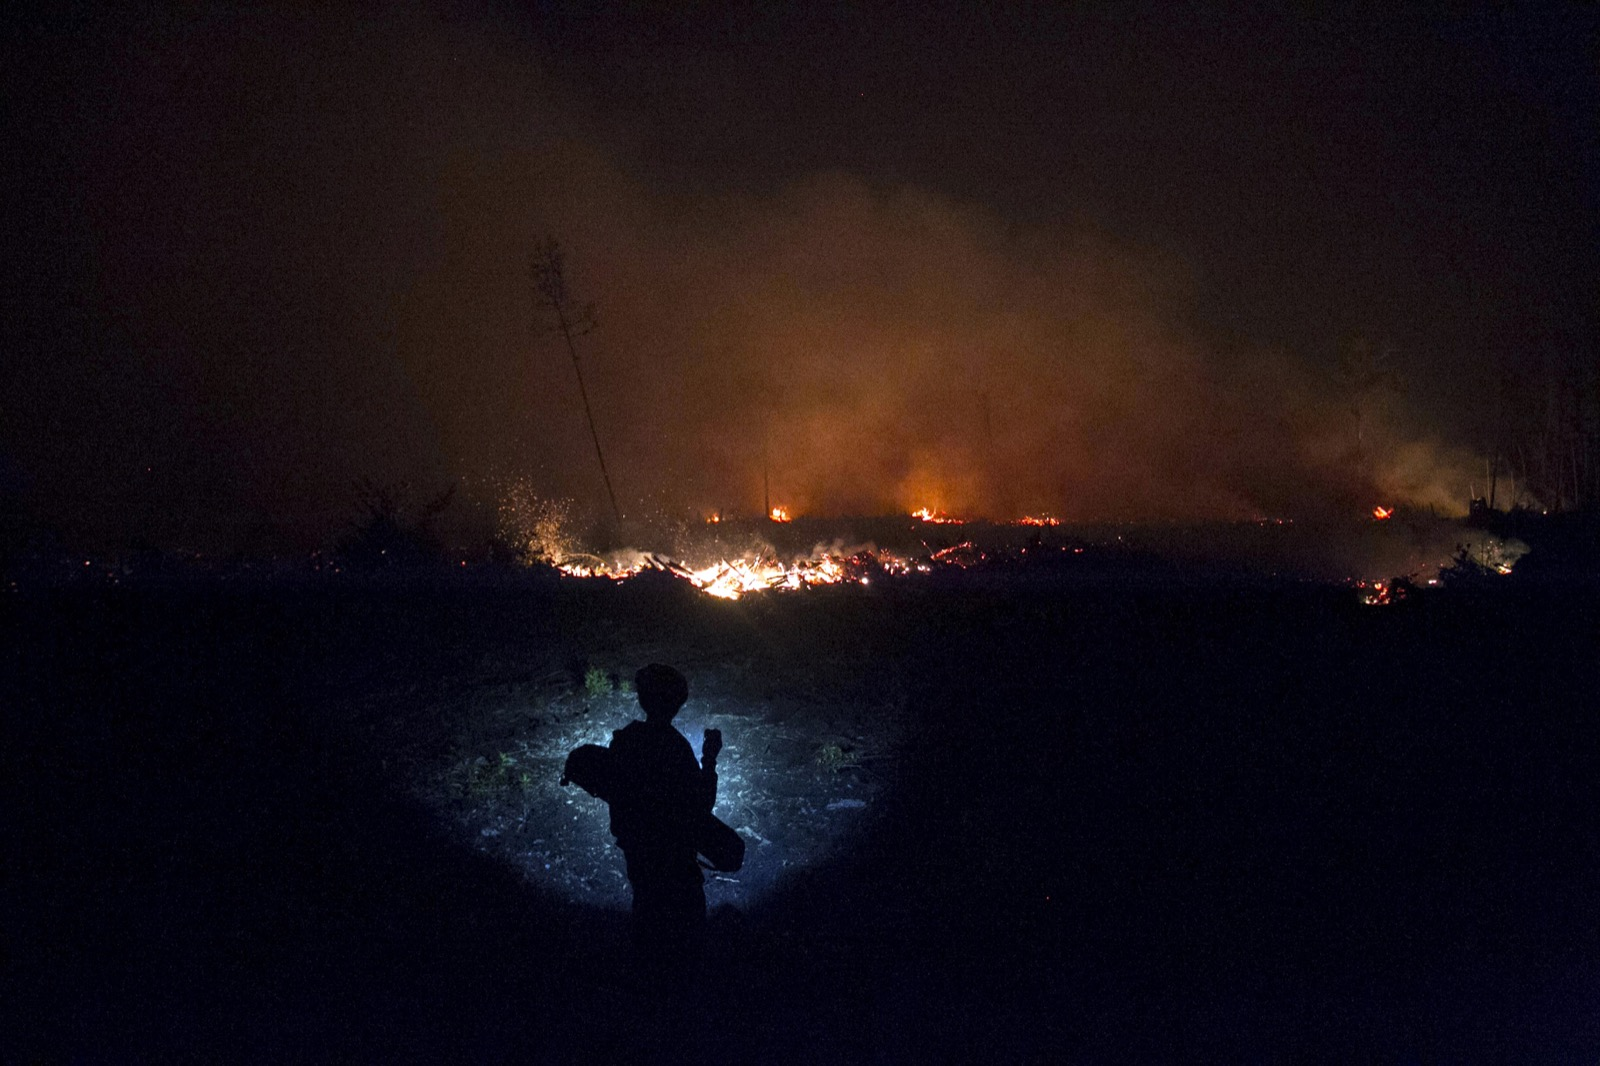 An Indonesian resident using a flashlight inspects a wildfire in a peatland, on the outskirts of Palangkaraya, Central Kalimantan, Indonesia. Photo: EPA/Fully Handoko